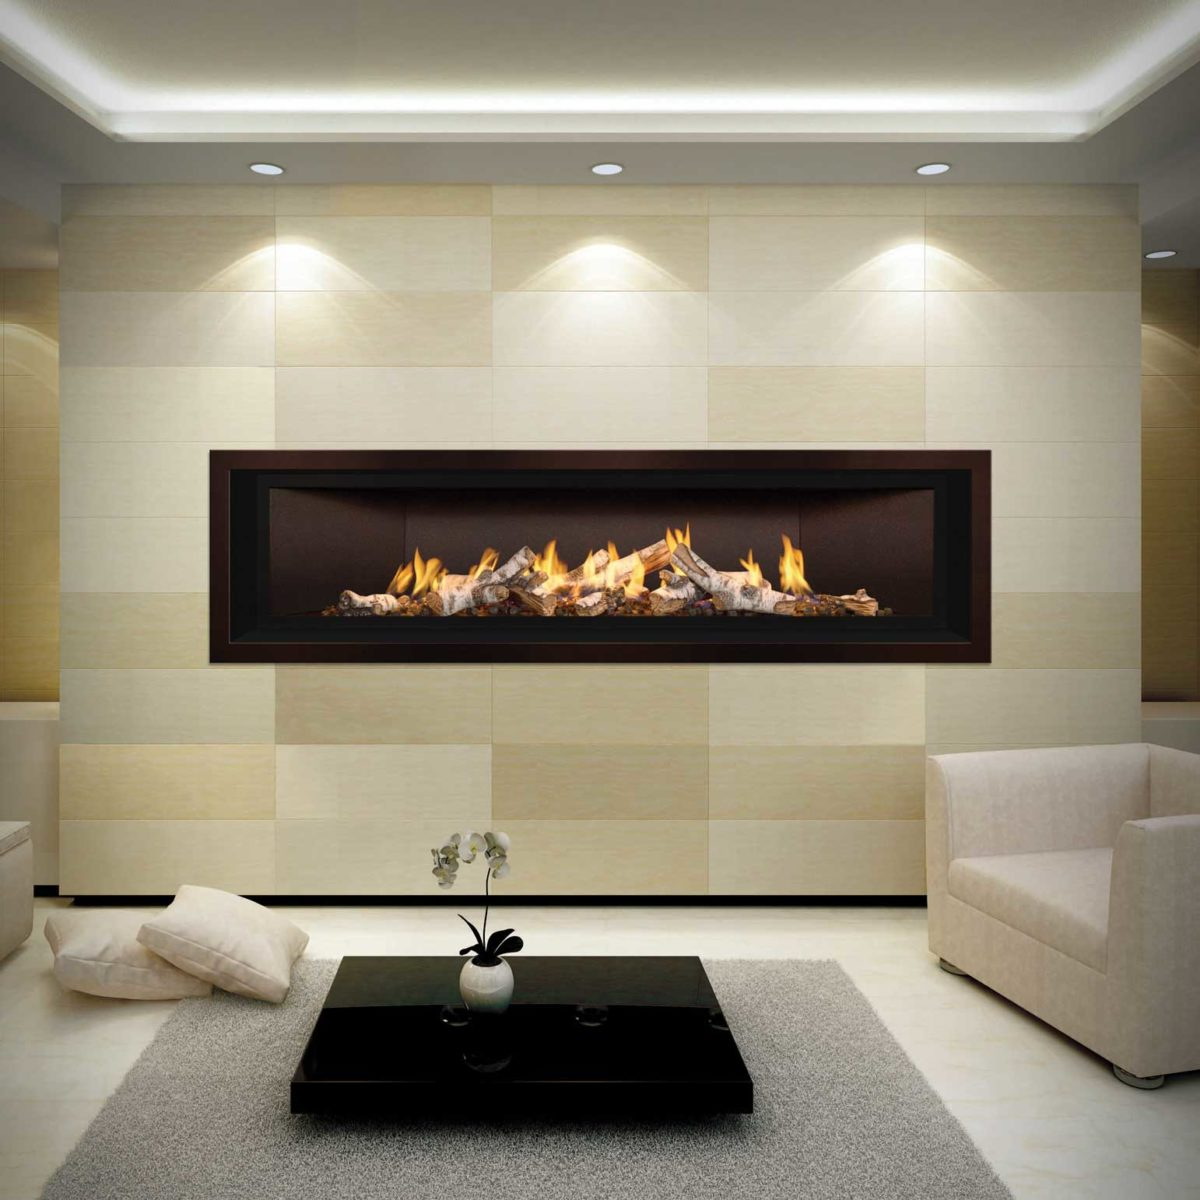 ML72-Fireplace-Modern-Colony-Plumbing-Heating-Air-Conditioning-Cedar-Rapids-Iowa-City